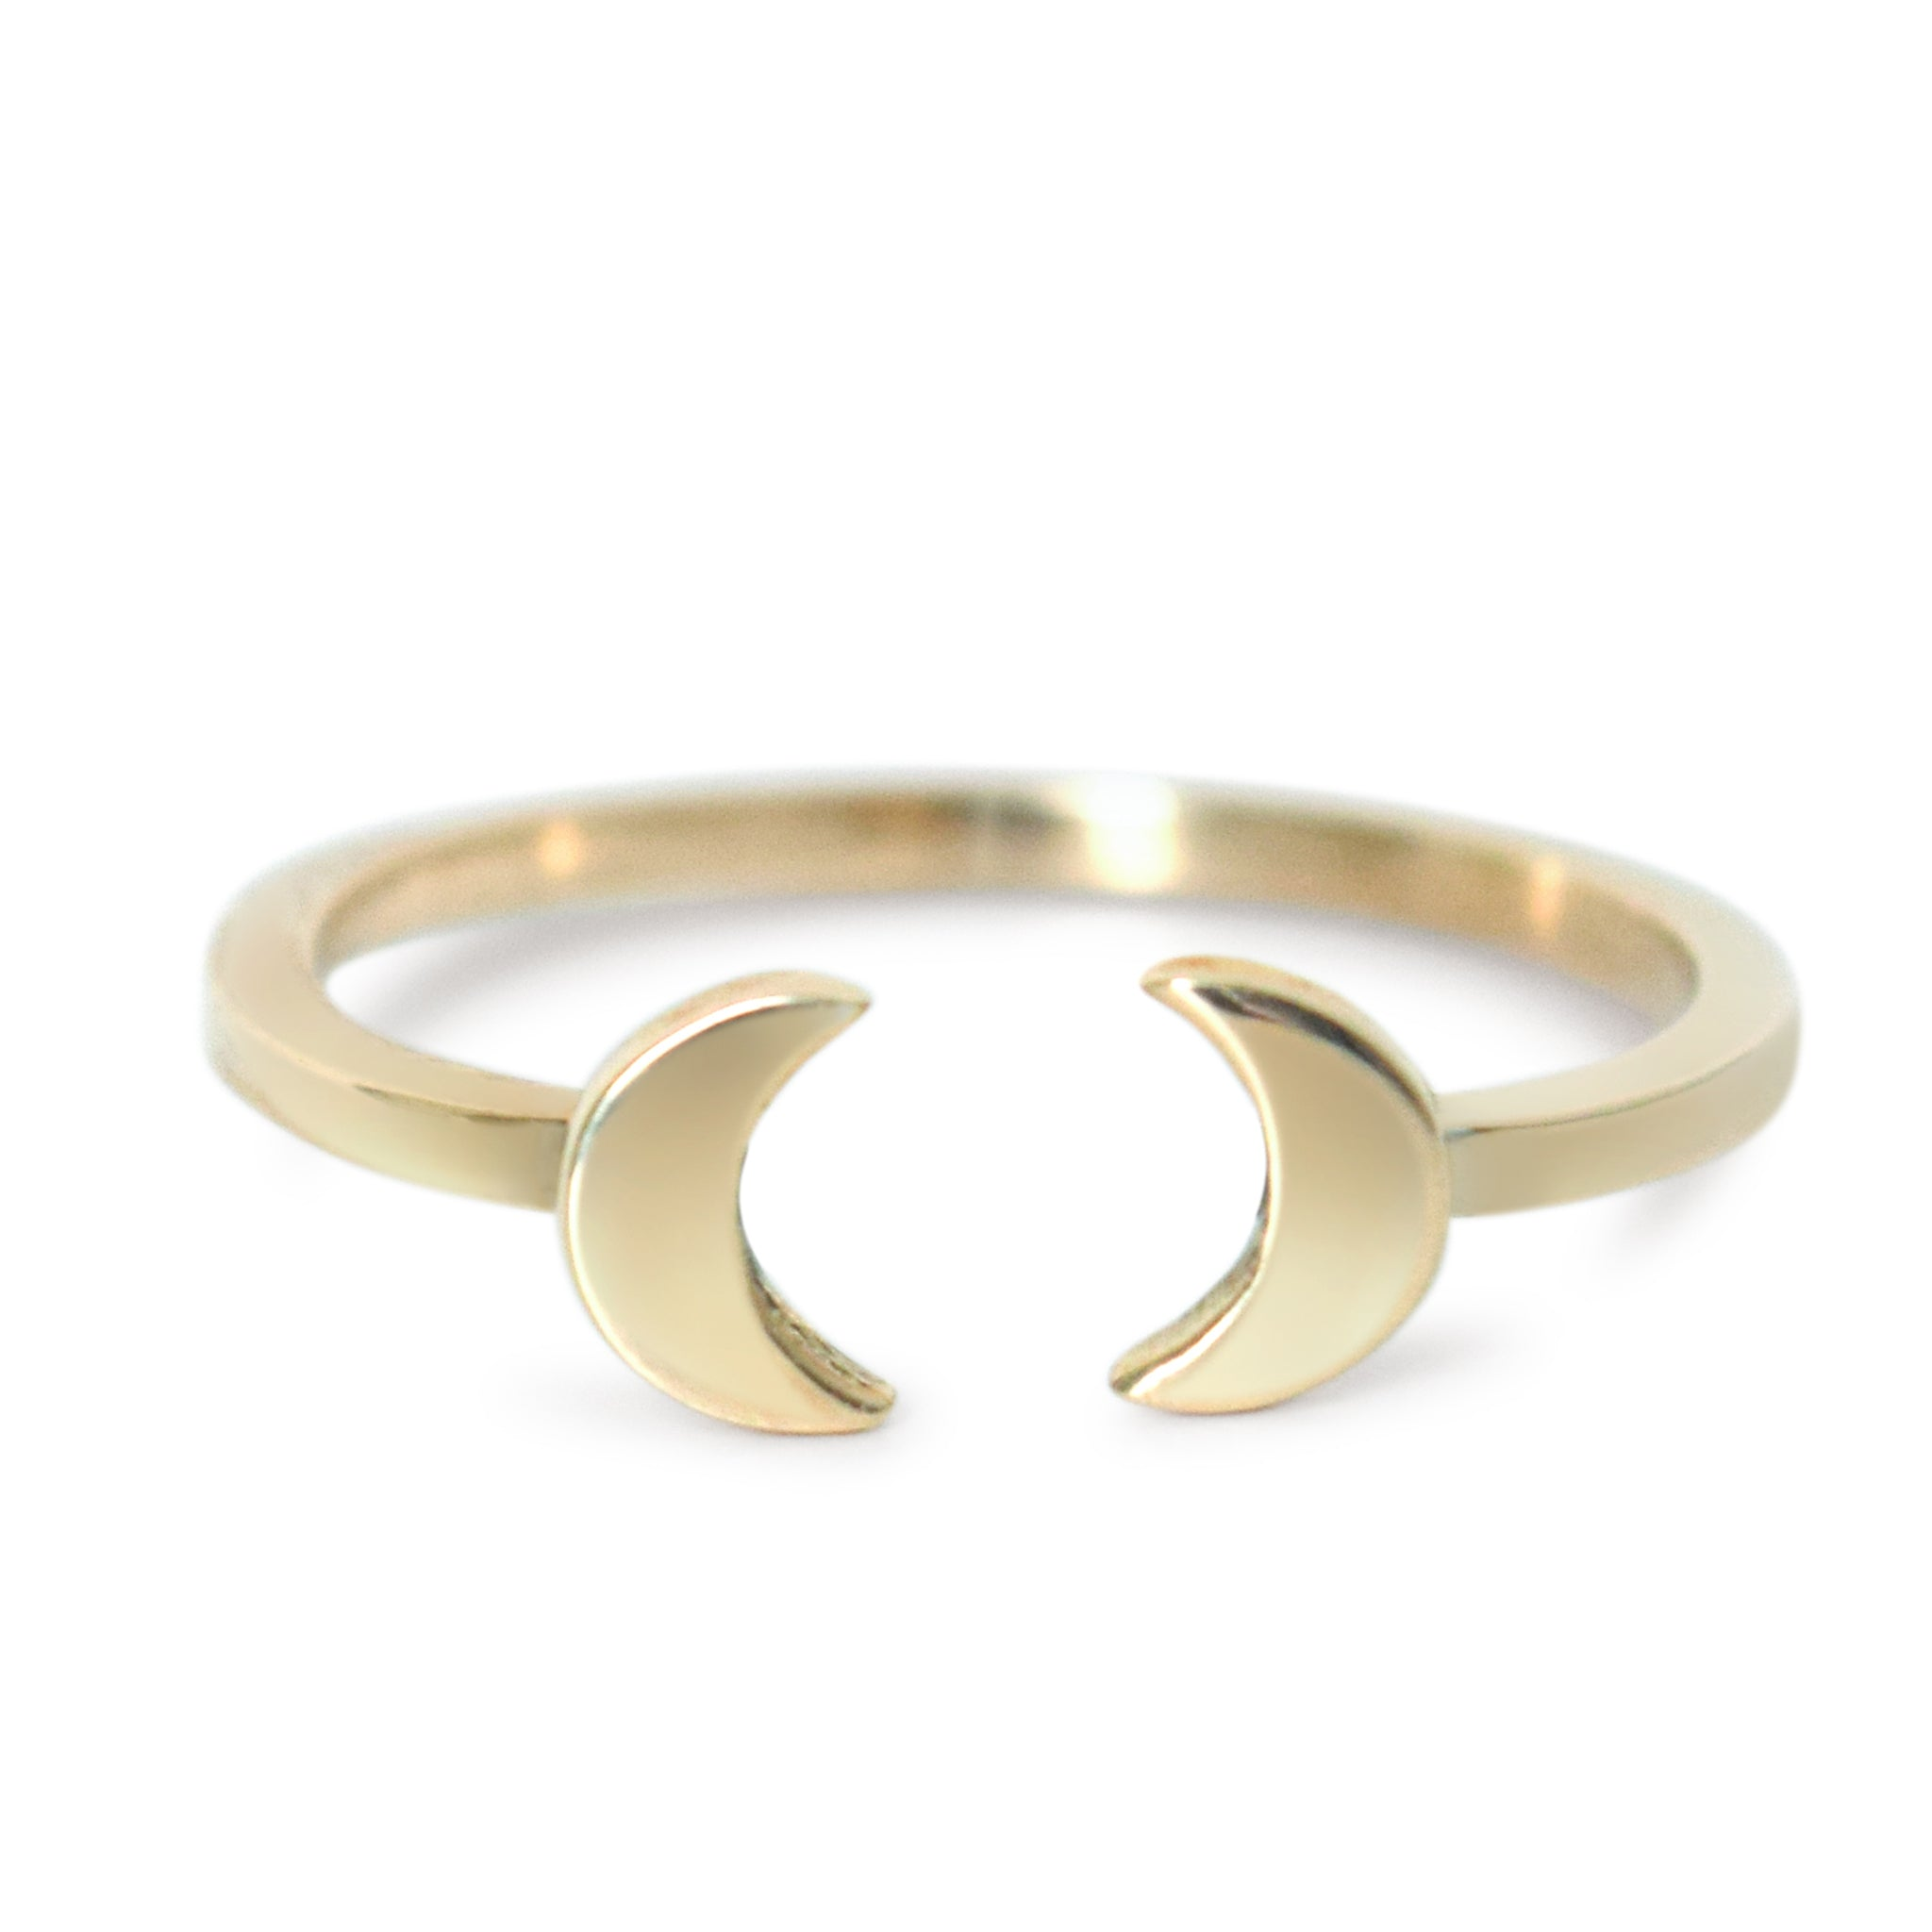 Mirrored Moon Adjustable Stacking Ring - Lissa Bowie